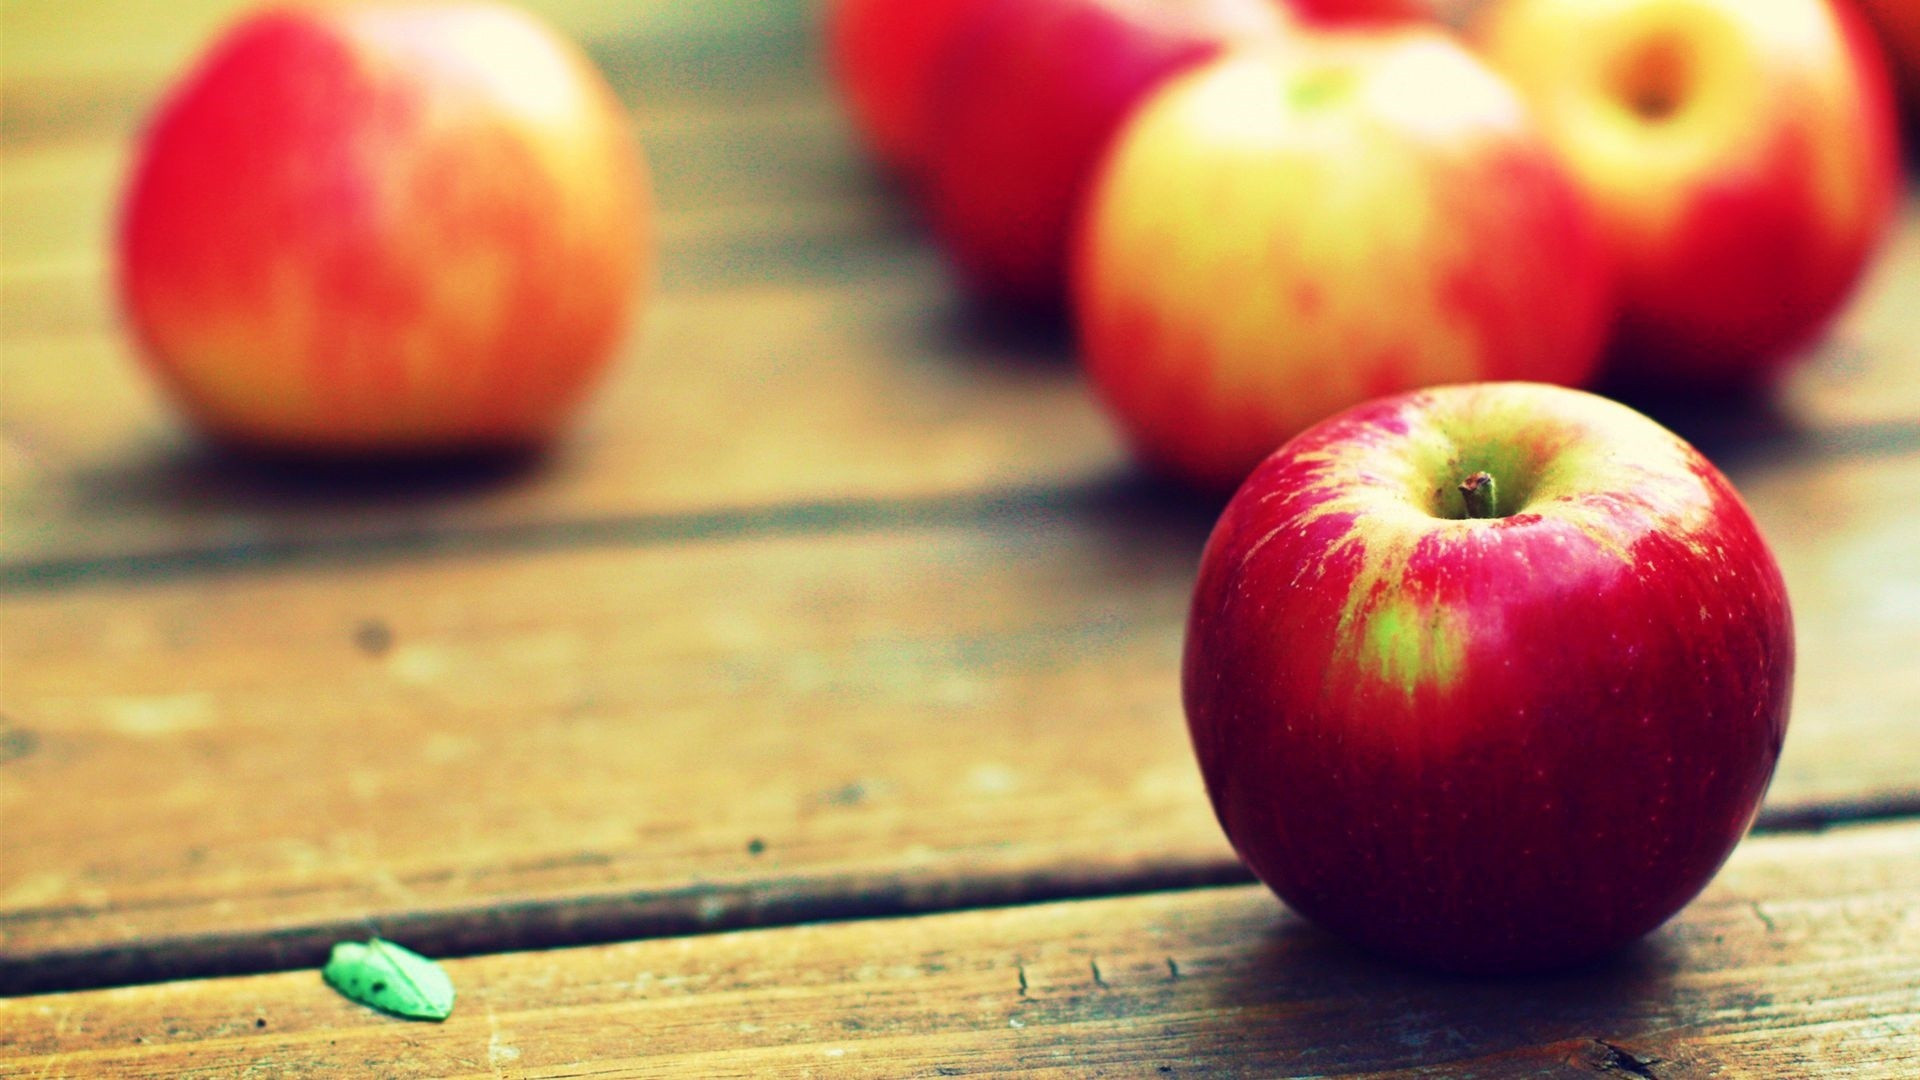 Apple Fruit Wallpaper theme